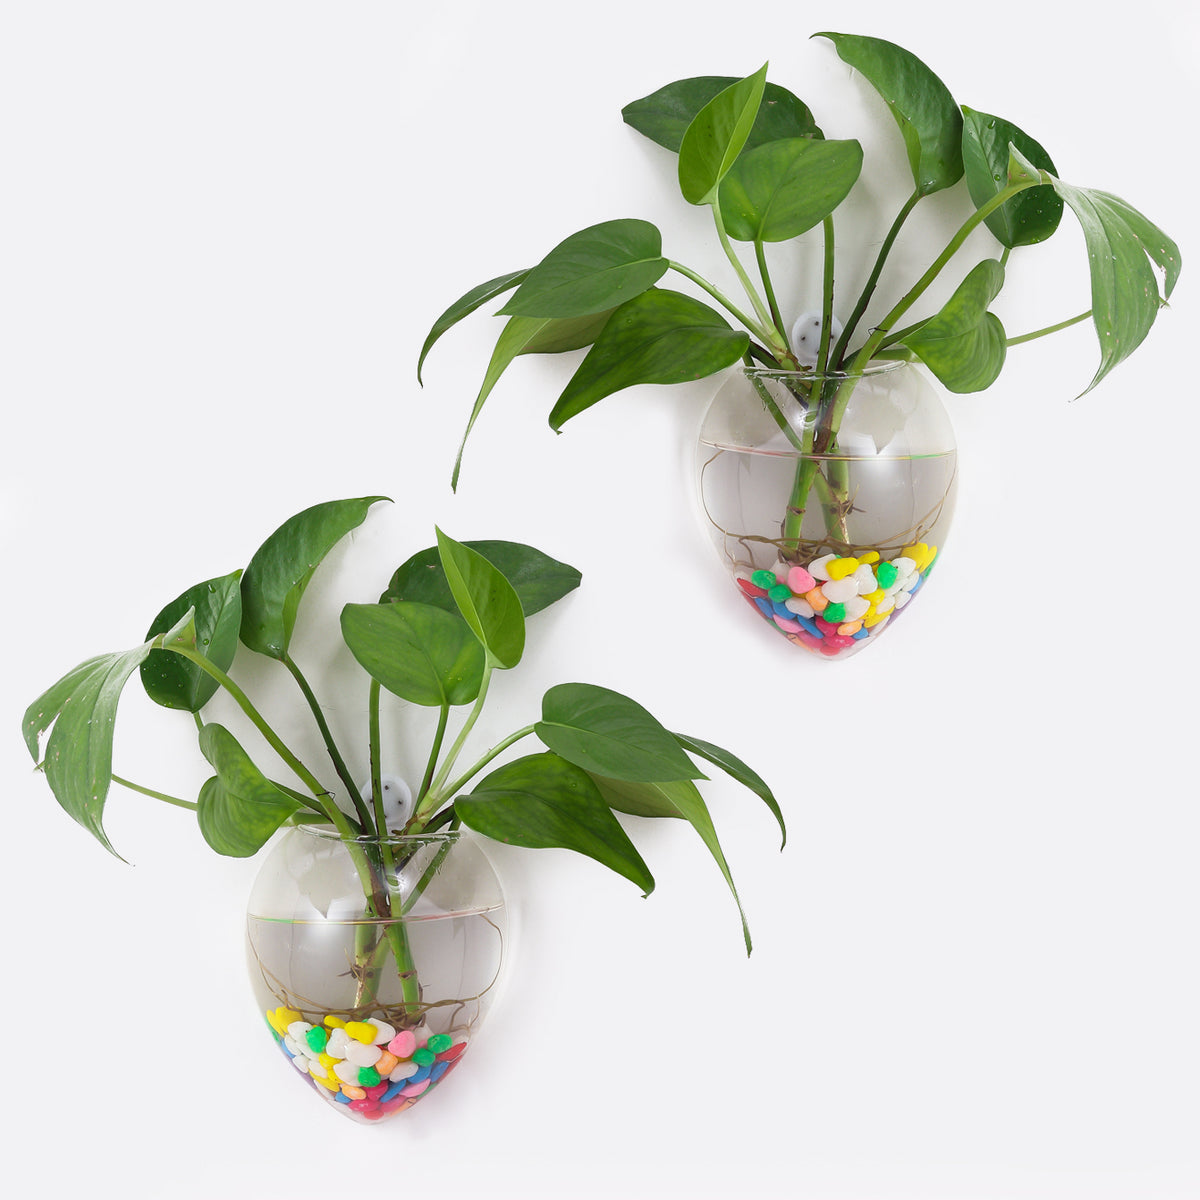 Wall Hanging Planters Hanging Glass Plant Pots Wall Glass Terrariums